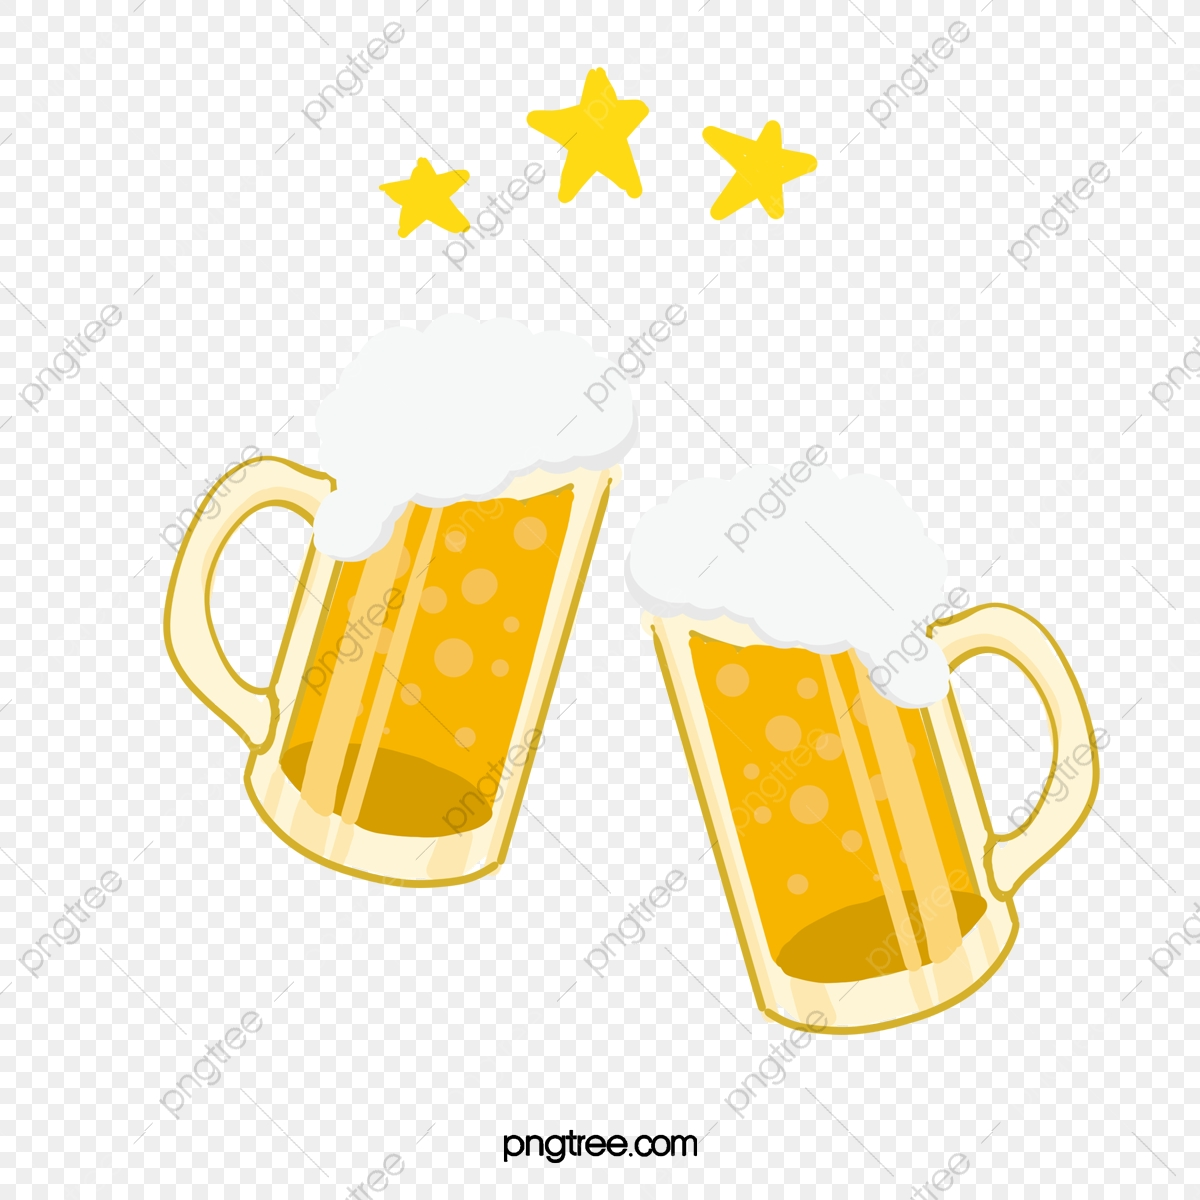 hight resolution of commercial use resource upgrade to premium plan and get license authorization upgradenow beer cheers beer clipart